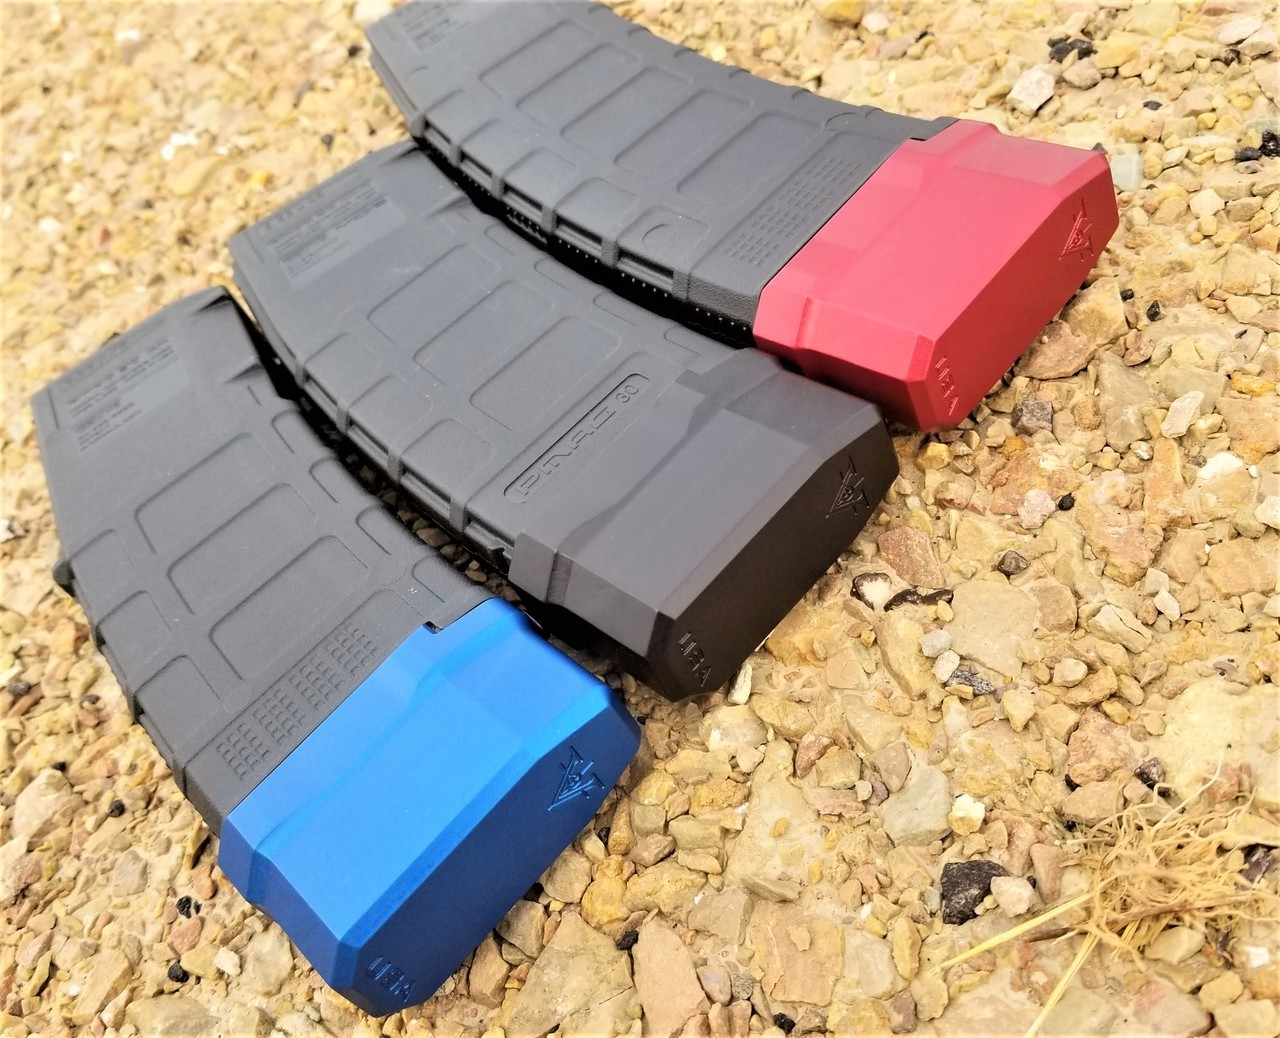 VENDETTA PRECISION DEBUTS NEW VP-26 P-MAG MAGAZINE EXTENSIONS!